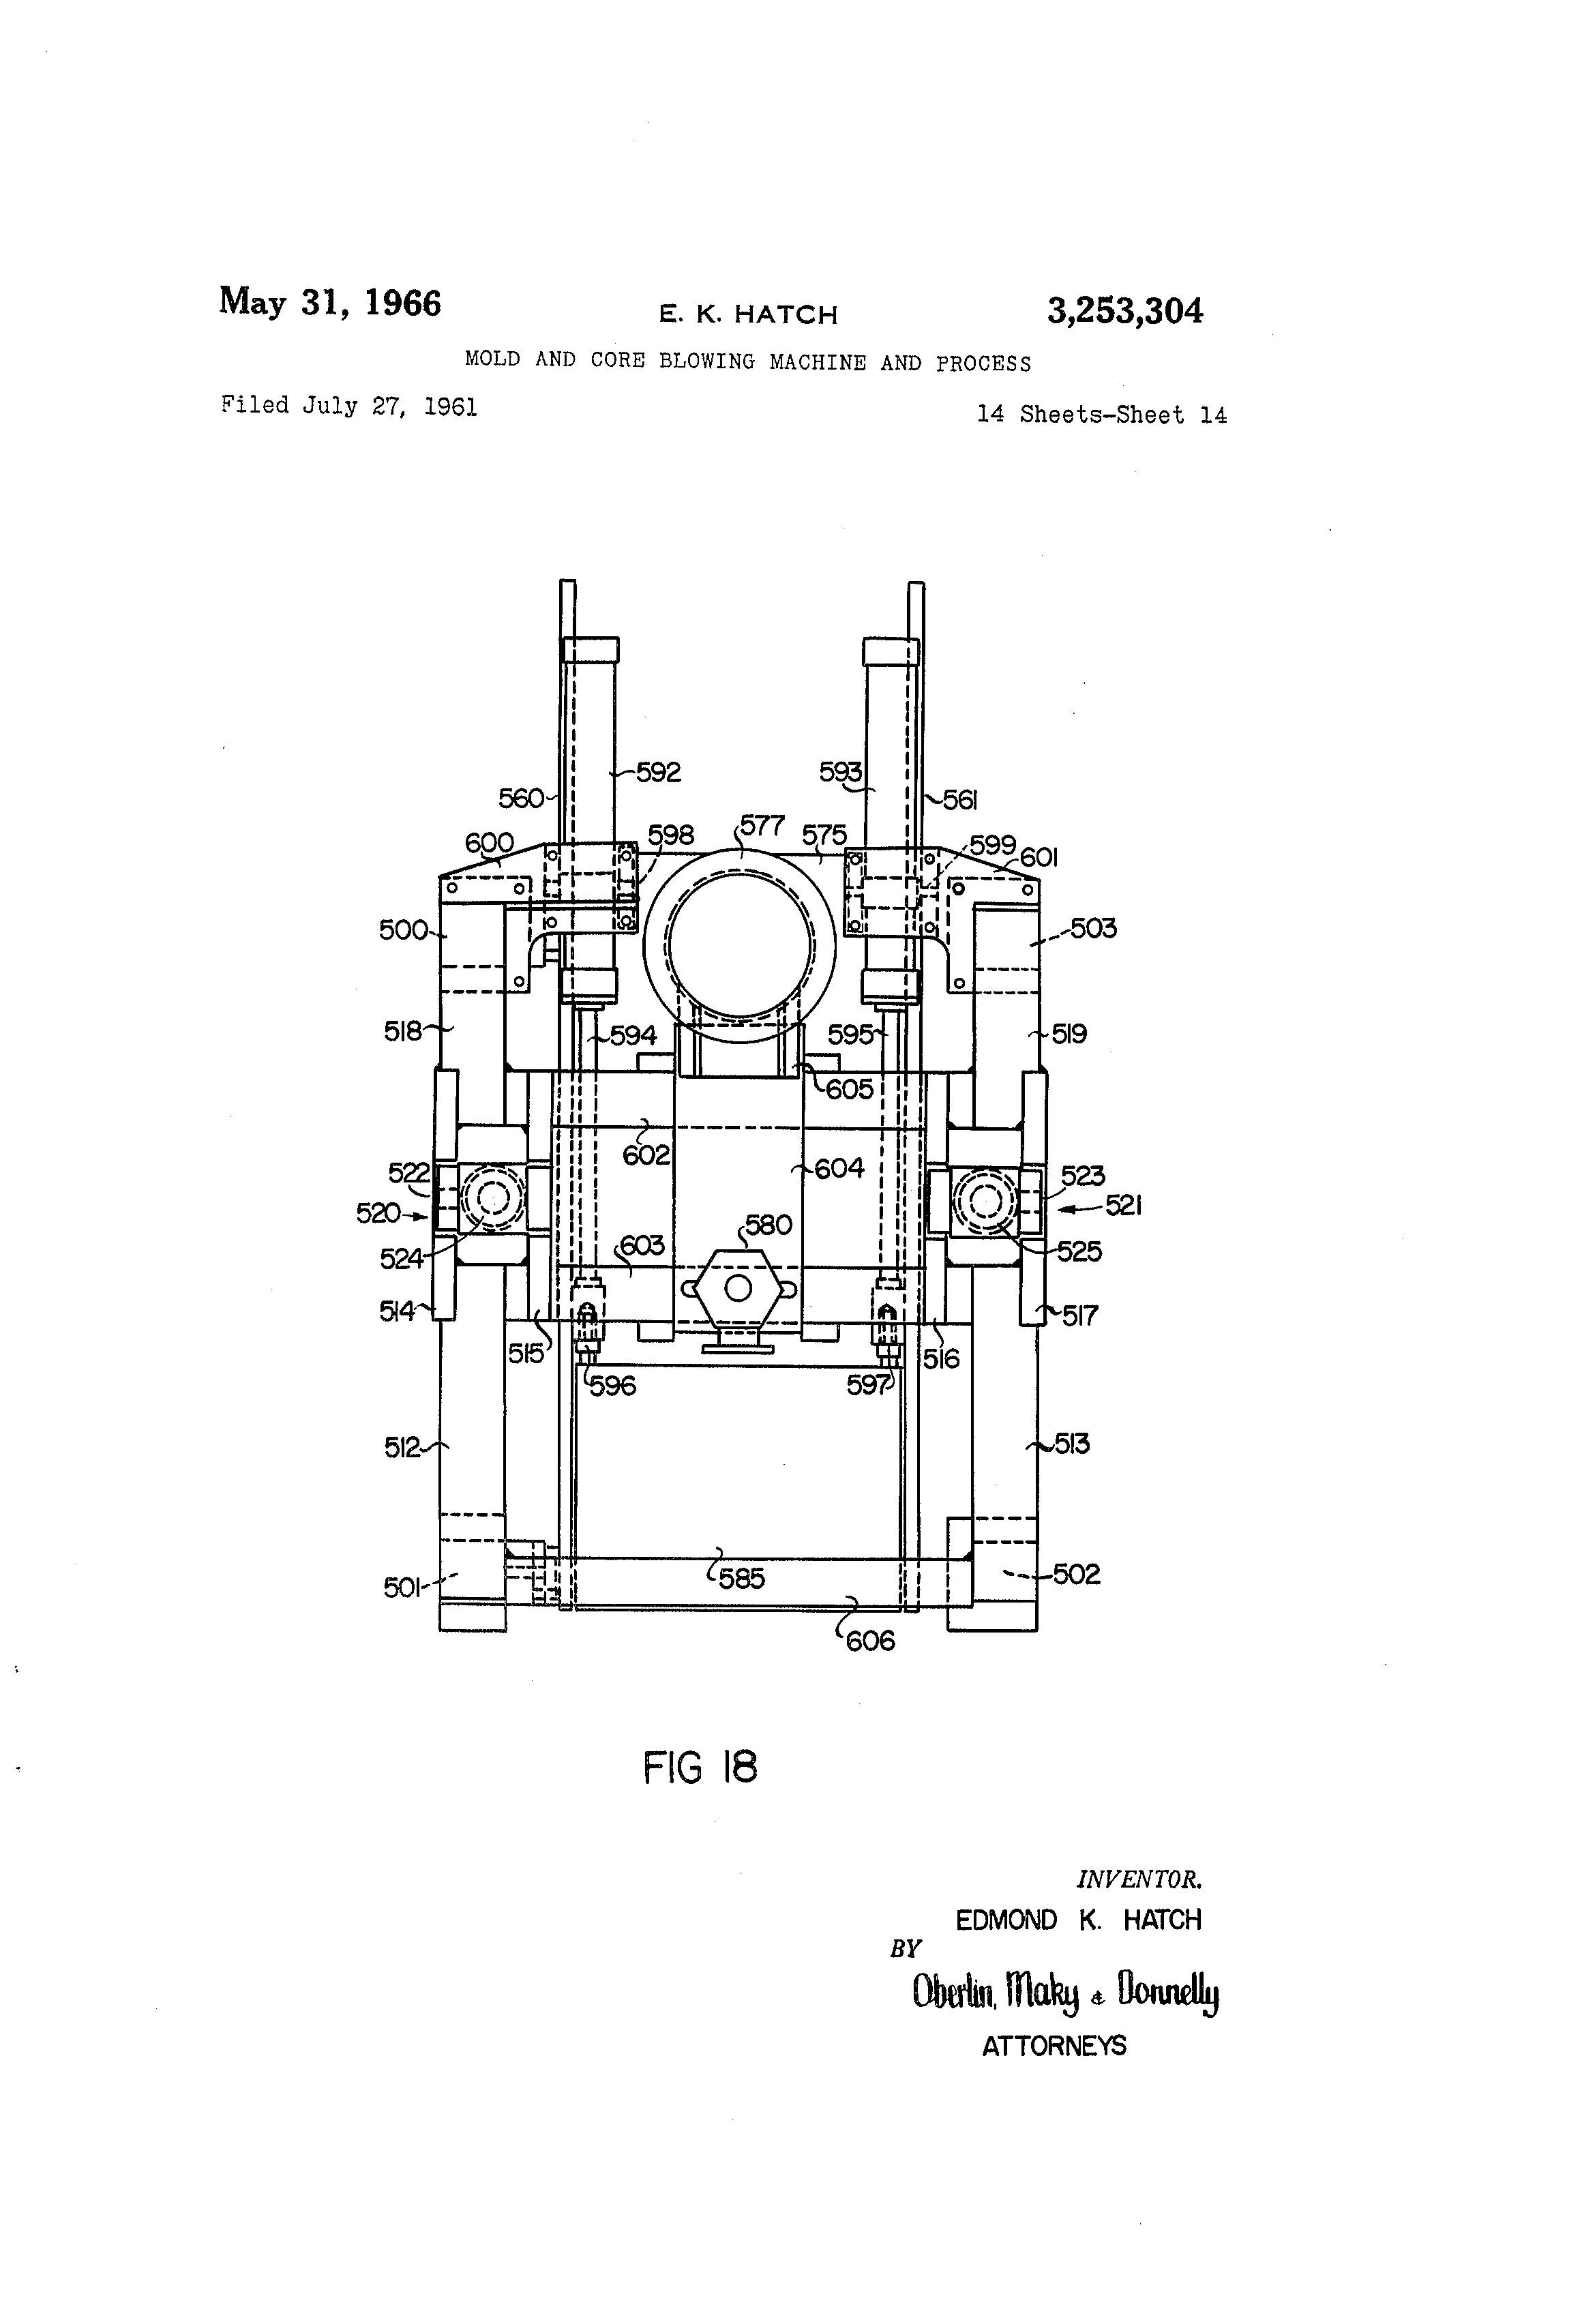 US3253304 13 patent us3253304 mold and core blowing machine and process  at mr168.co